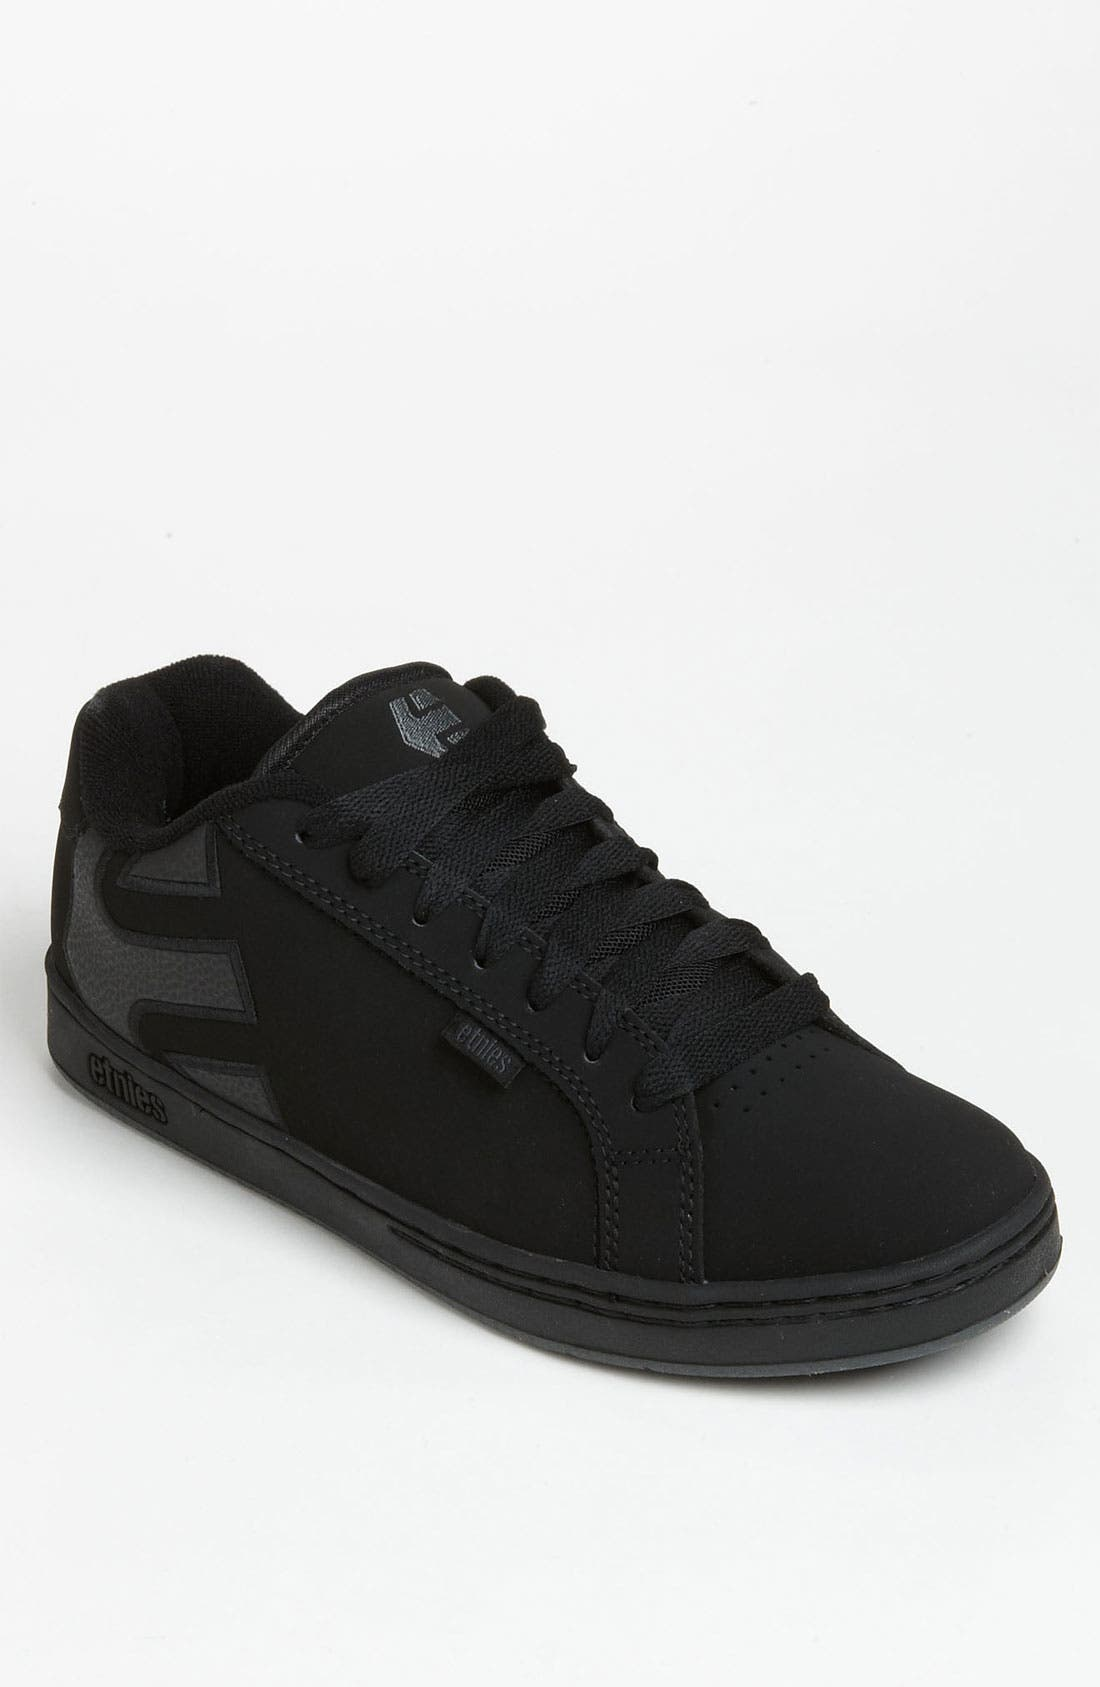 Main Image - Etnies 'Fader' Skate Shoe (Men)